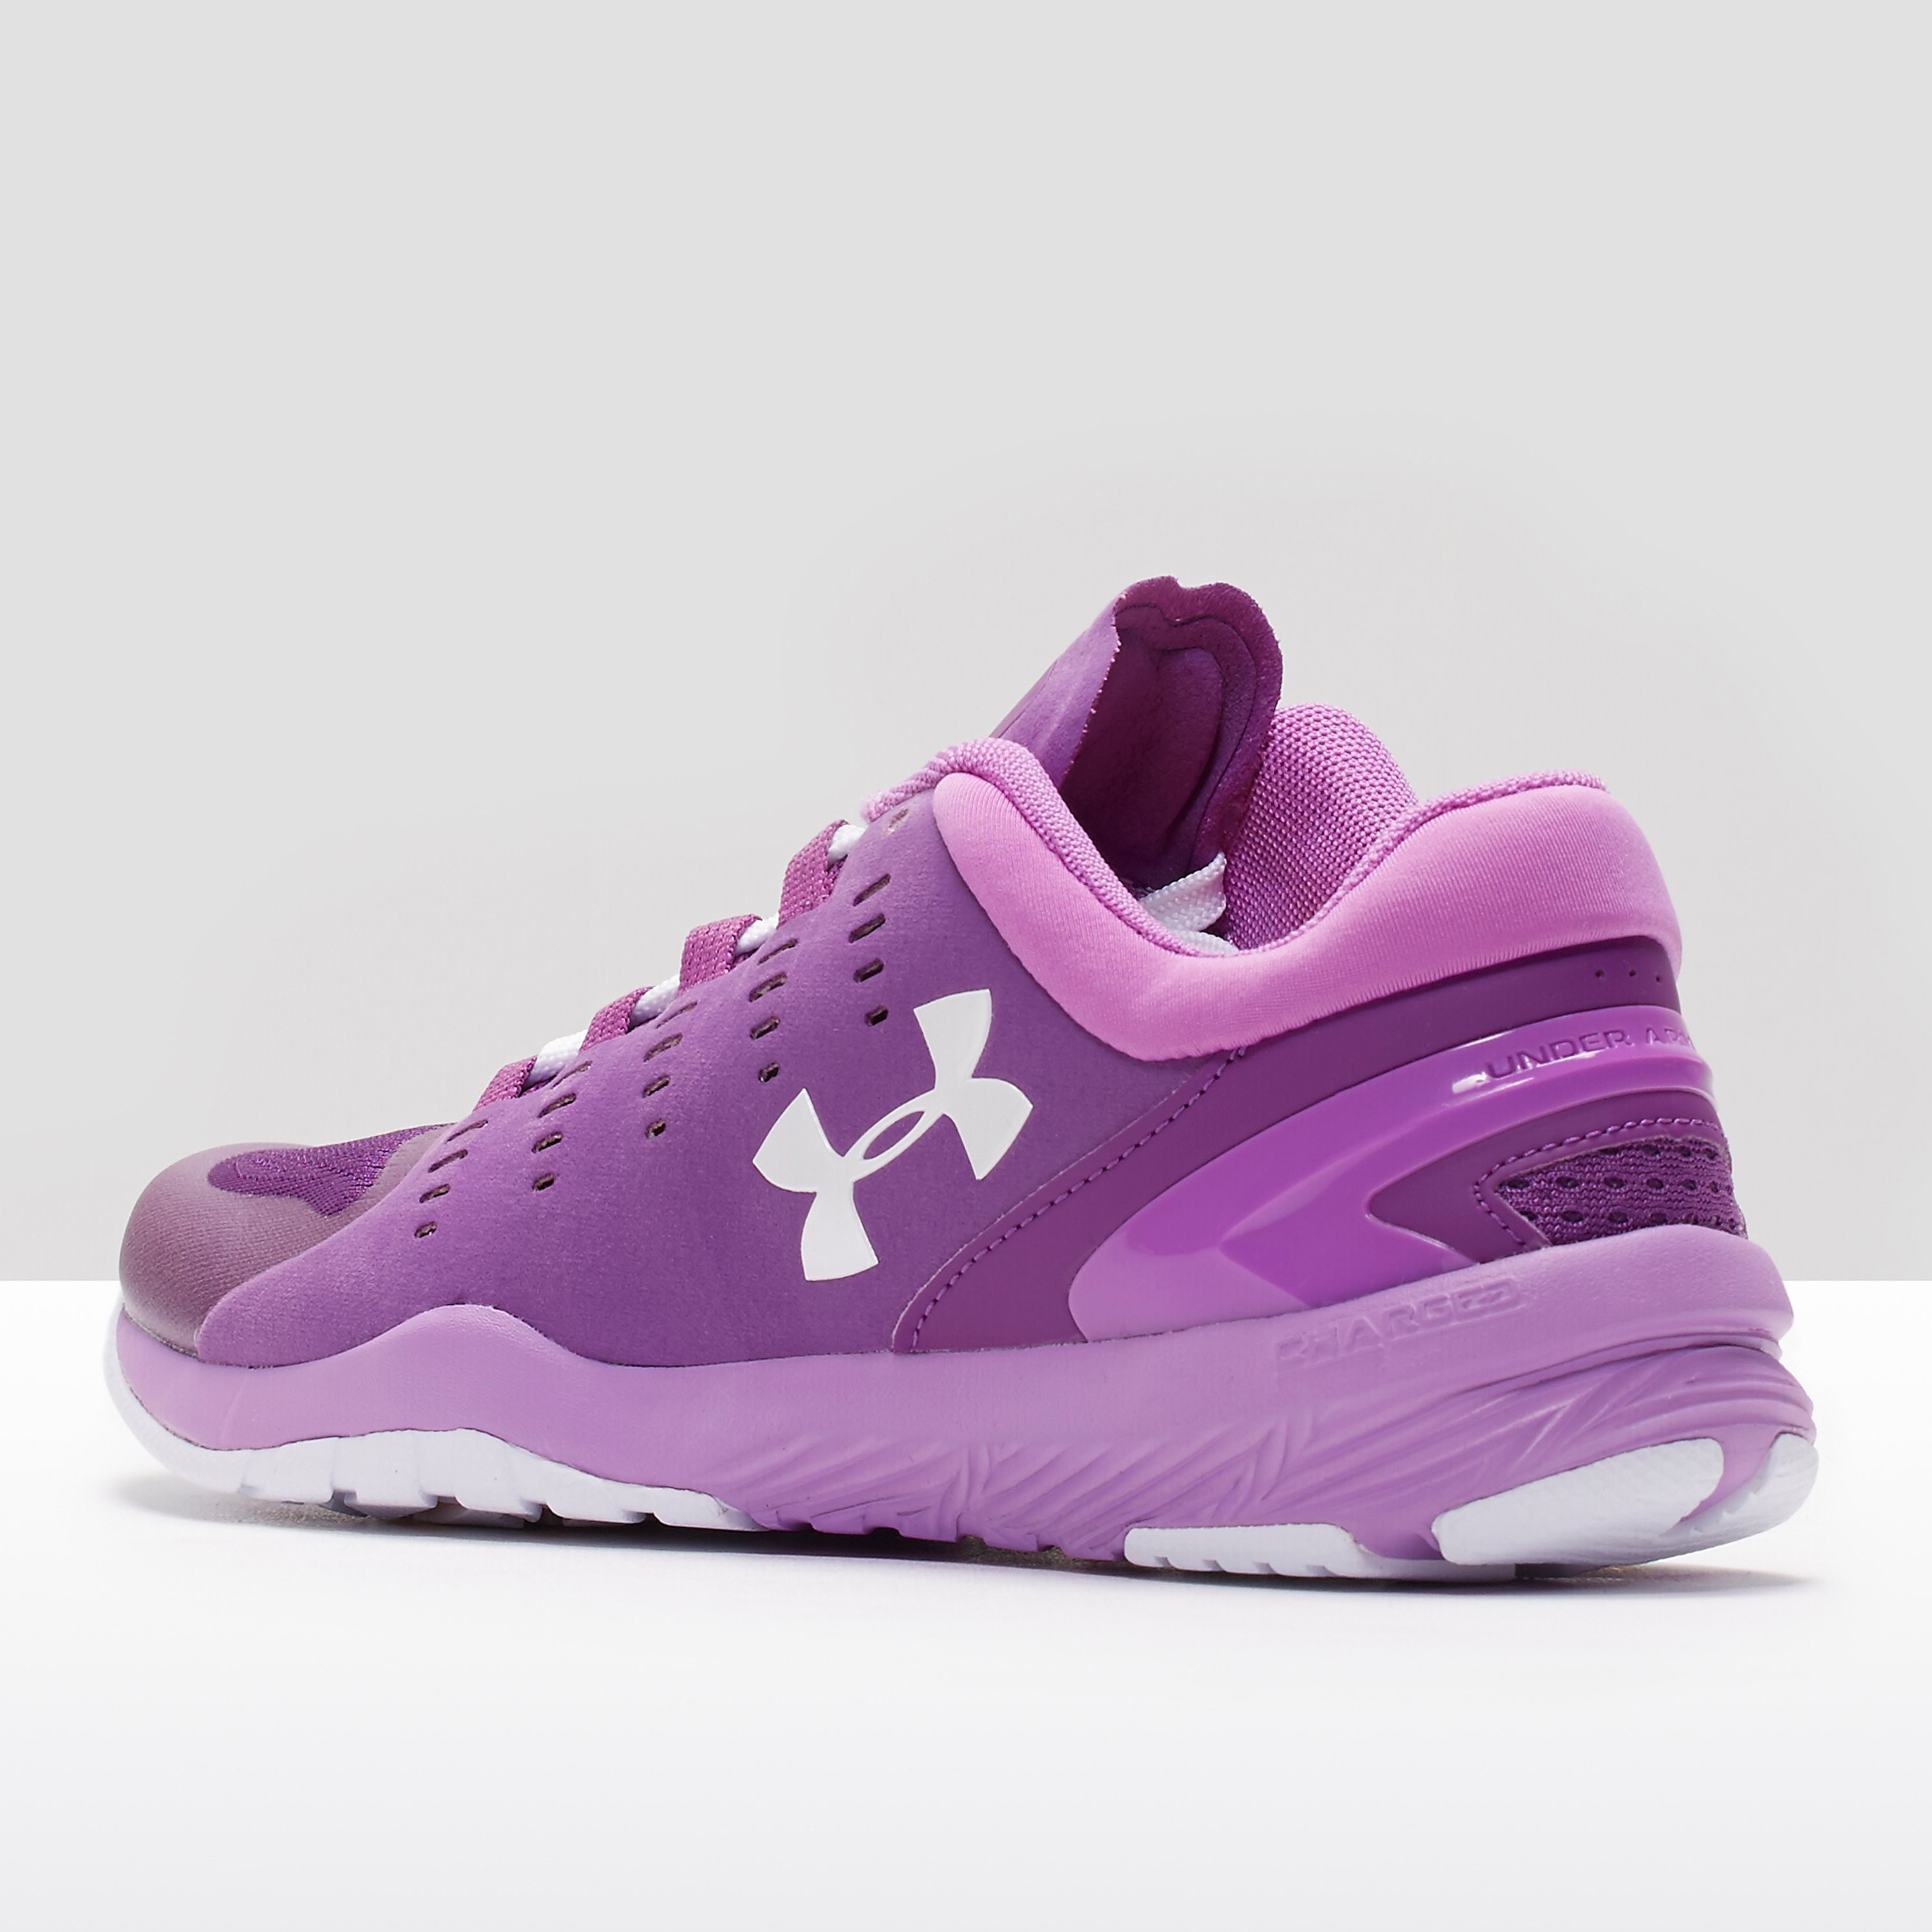 Under Armour UA Charged Stunner Ladies Training Shoe